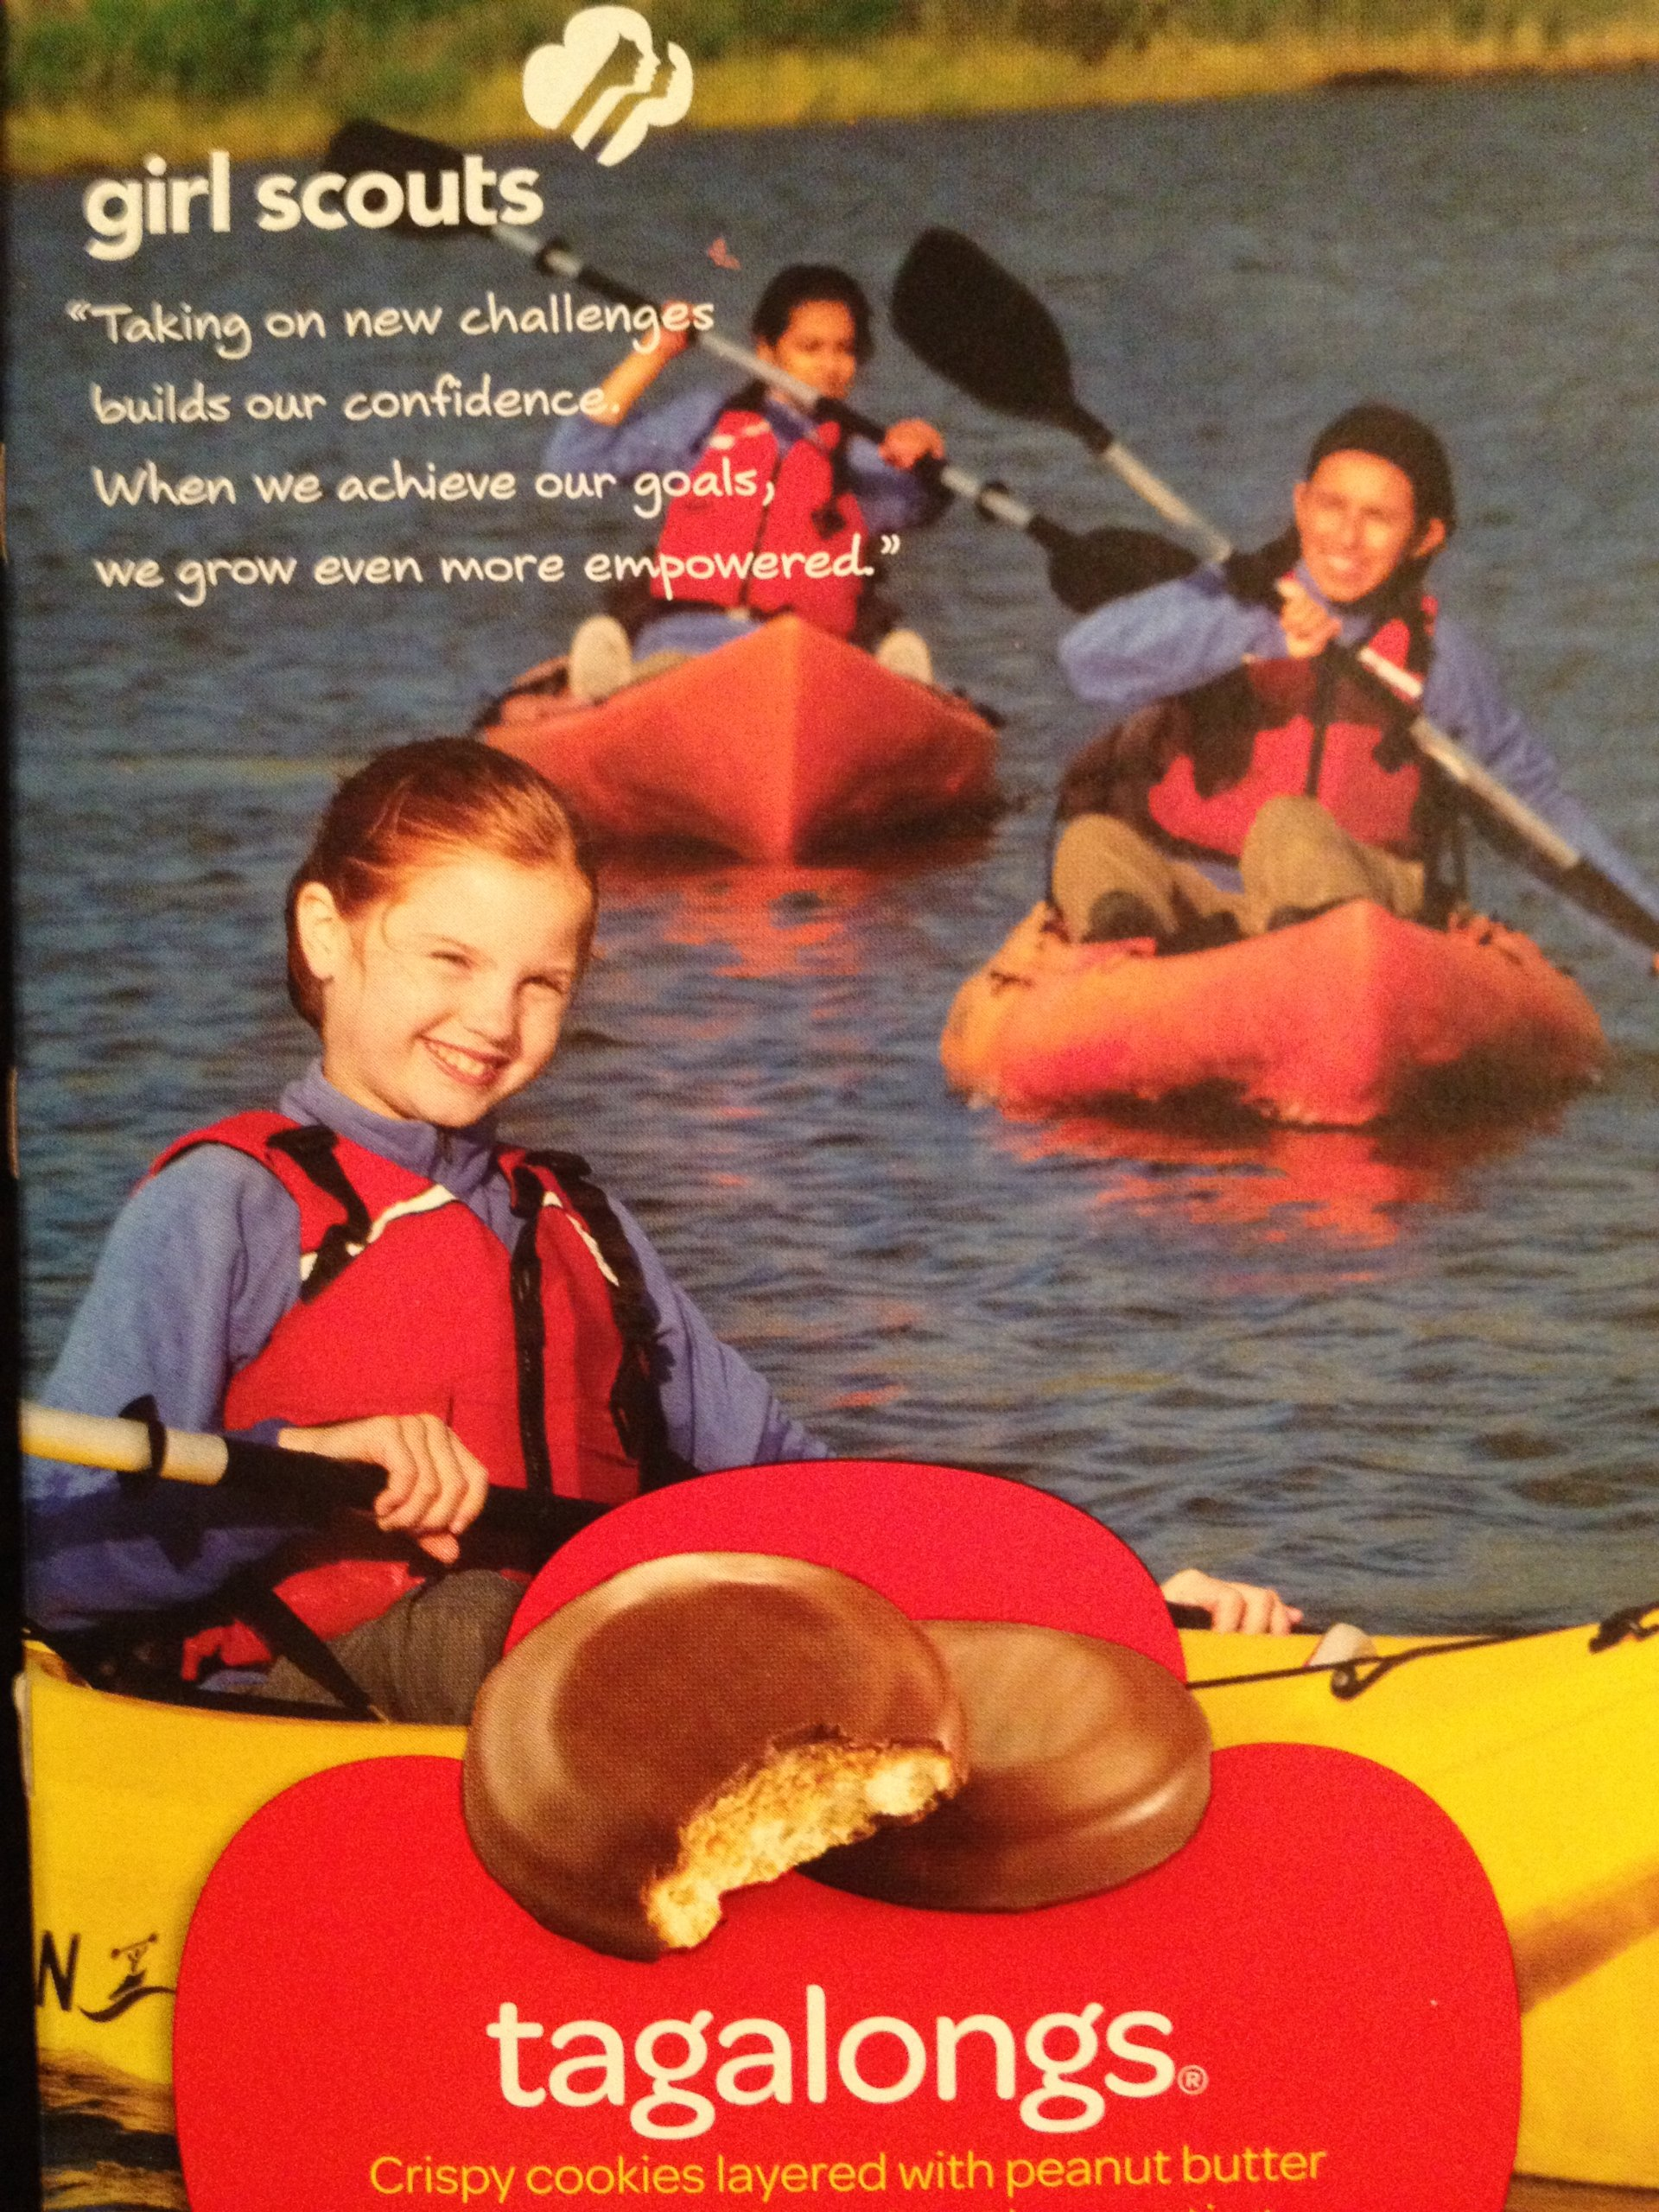 GIRL SCOUT COOKIES Tagalongs (14 per box) Full Case of 12 boxes